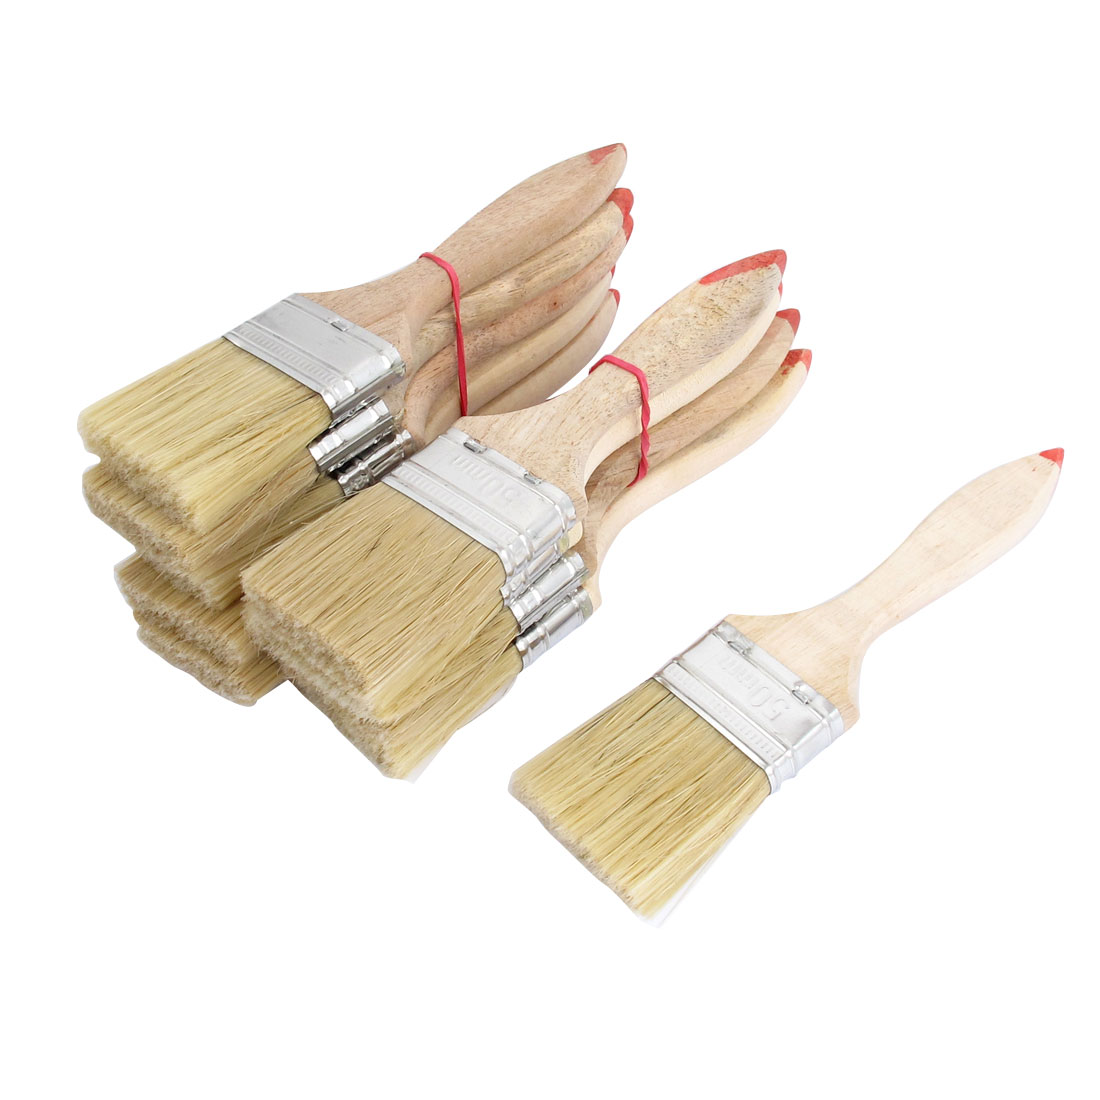 "Painter Wood Nonslip Handle Brushes Nylon Hair Paint Painting Background Blending Wall Brush 10 Pcs 2"" Width Beige"